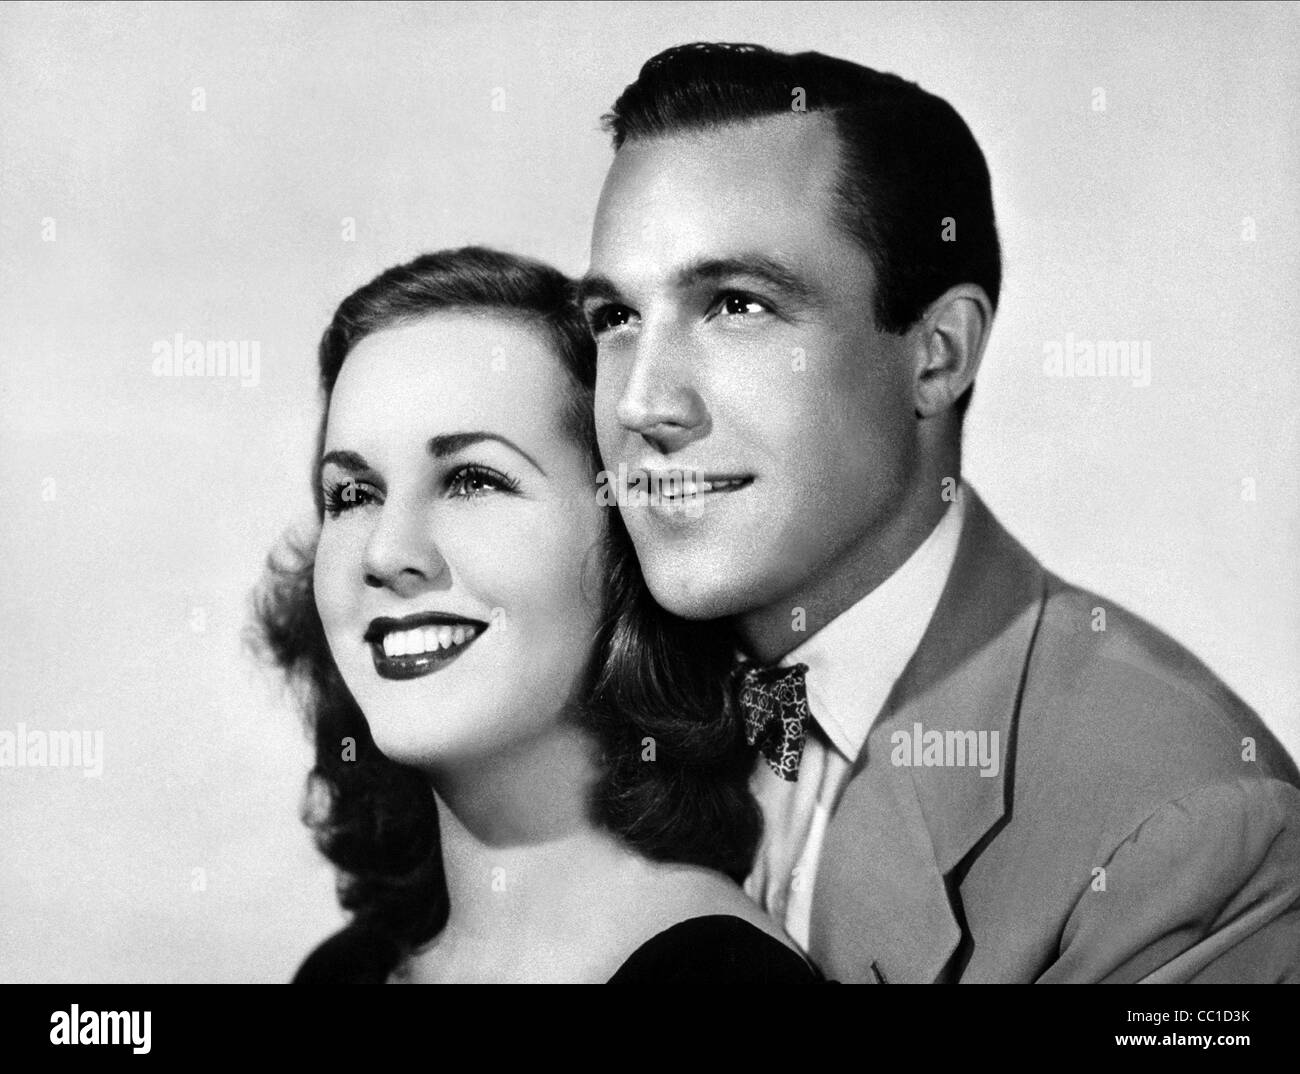 Movies And Christmas Black and White Stock Photos & Images - Alamy